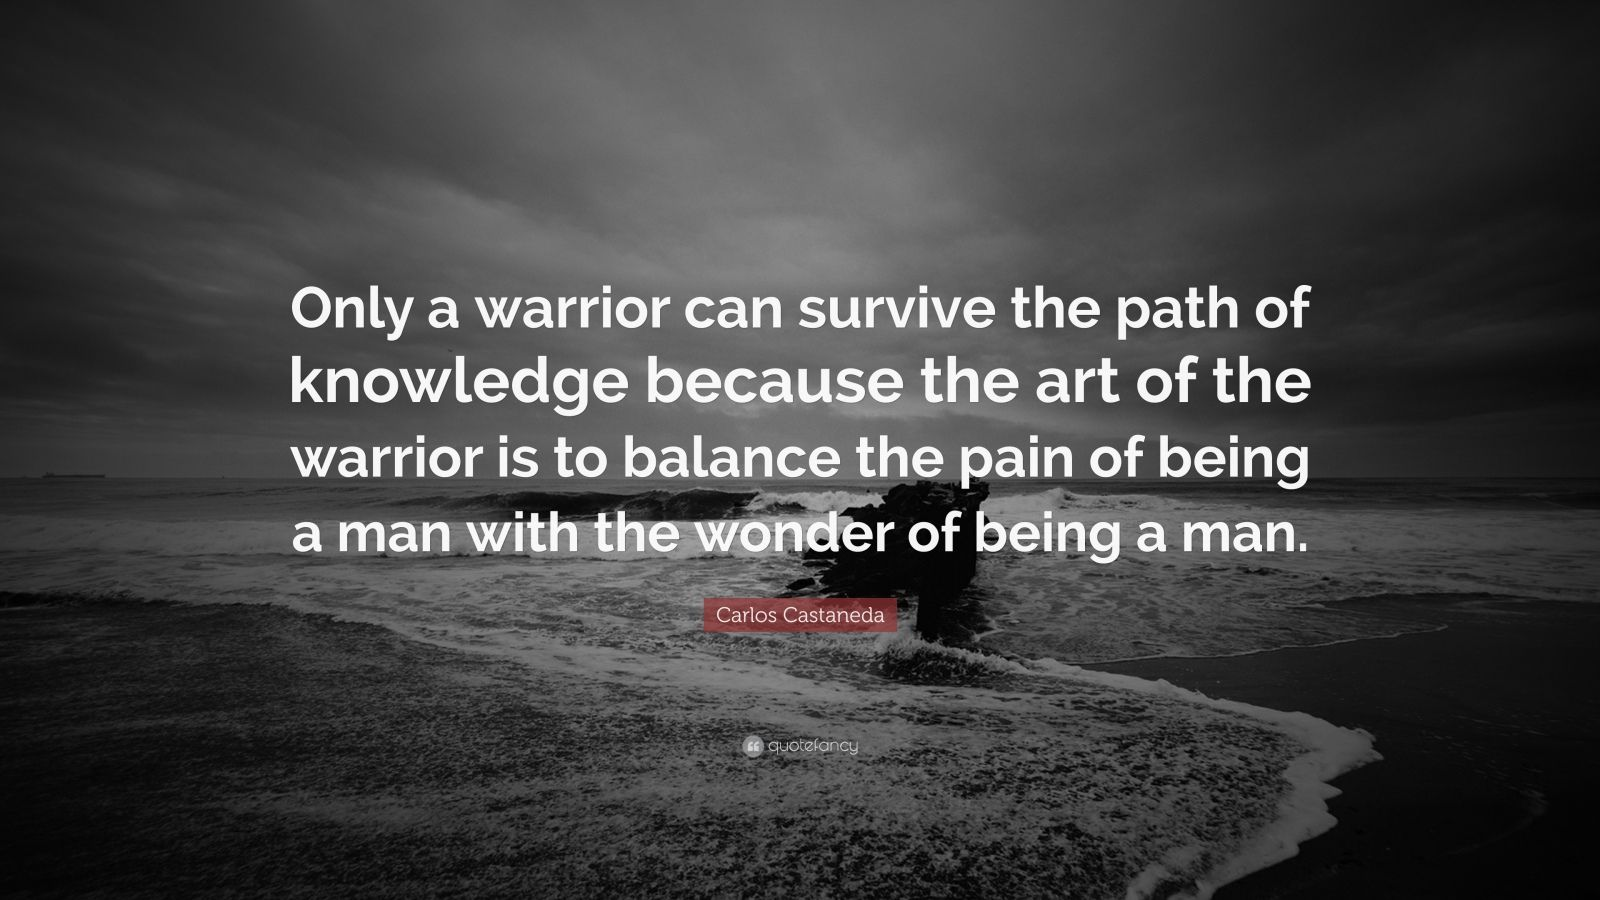 Sadness Wallpaper With Quotes Carlos Castaneda Quote Only A Warrior Can Survive The